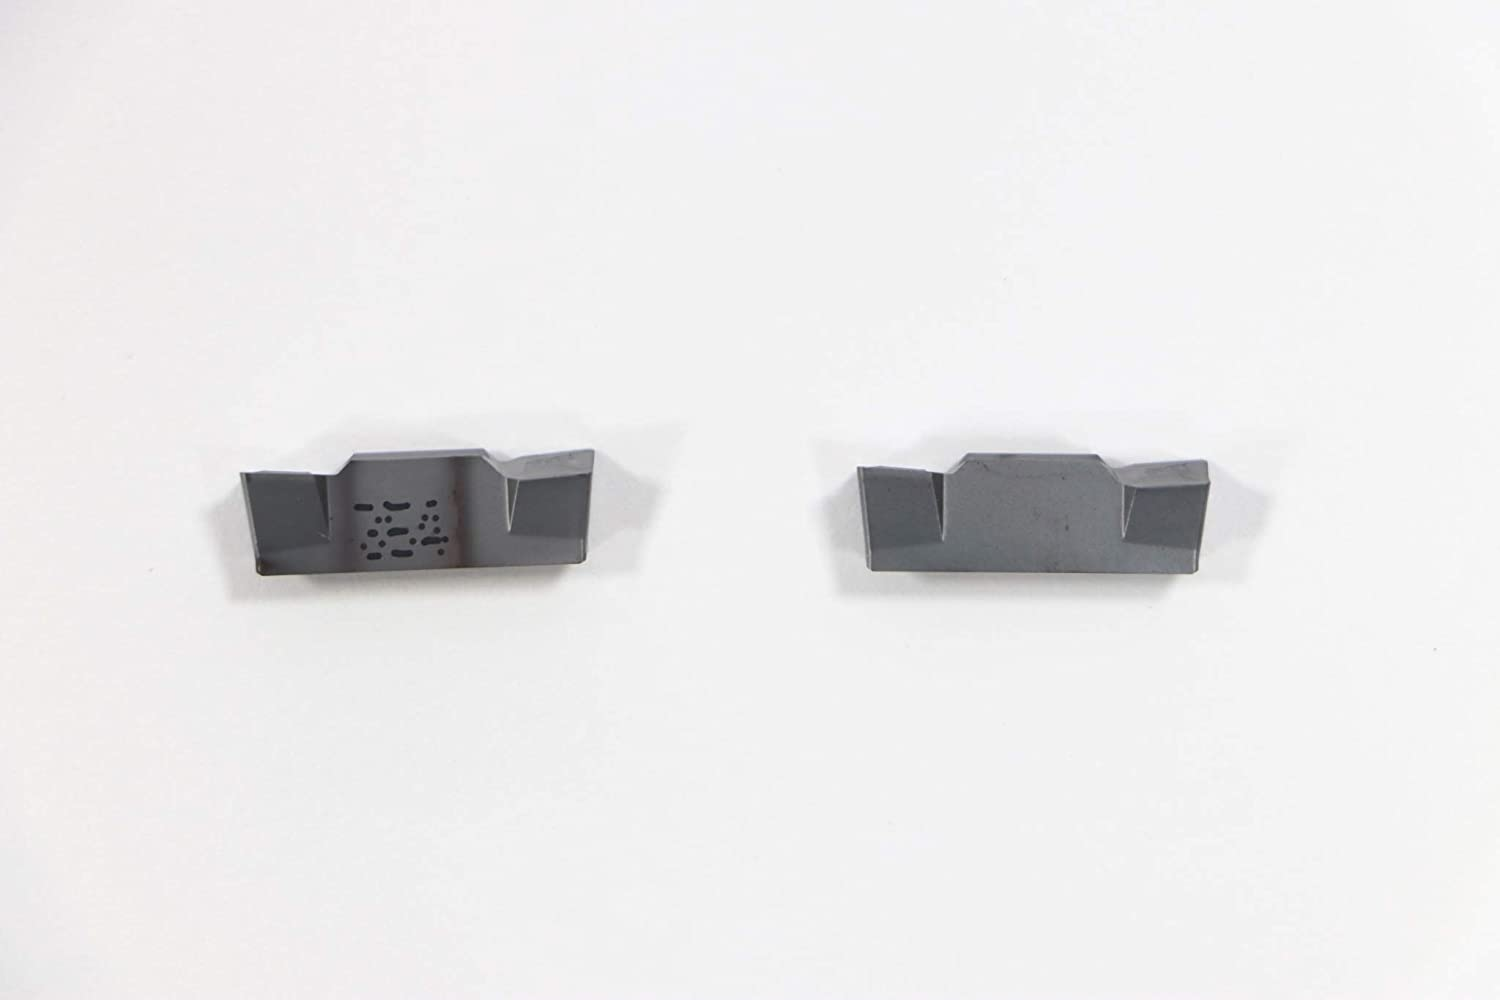 ISCAR HFPR 5004 IC354 Parting Grooving Inserts Cutting Tools CNC Carbide Insert for Heliface HFHR Toolholders